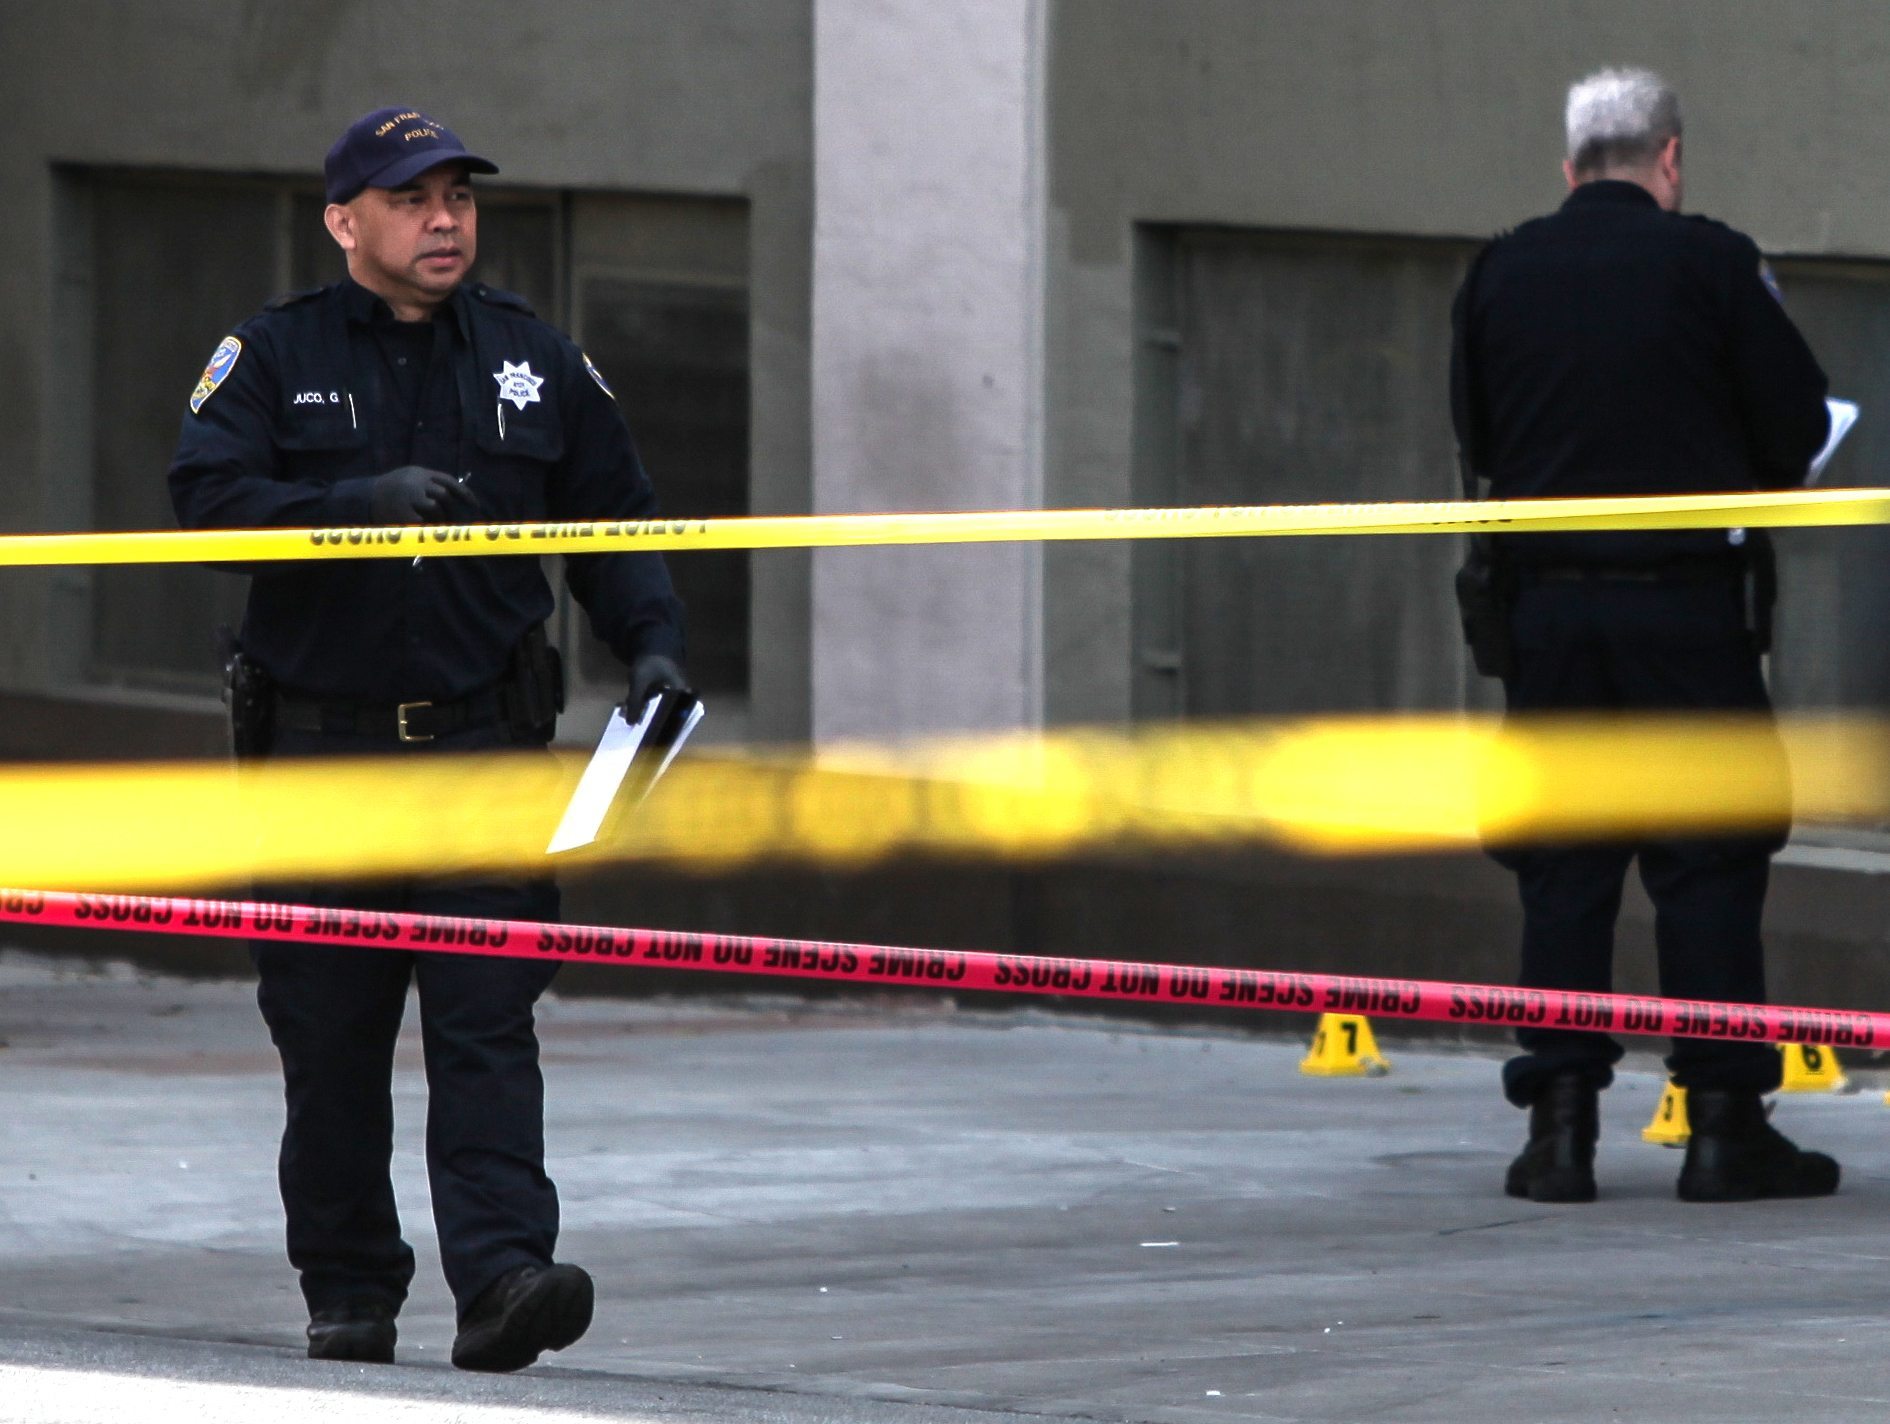 Crews investigate the scene after an officer involved shooting on Shotwell Street near 19th Street in San Francisco, Calif. Thursday, April 7, 2016. (Ekevara Kitpowsong/Special to S.F. Examiner)